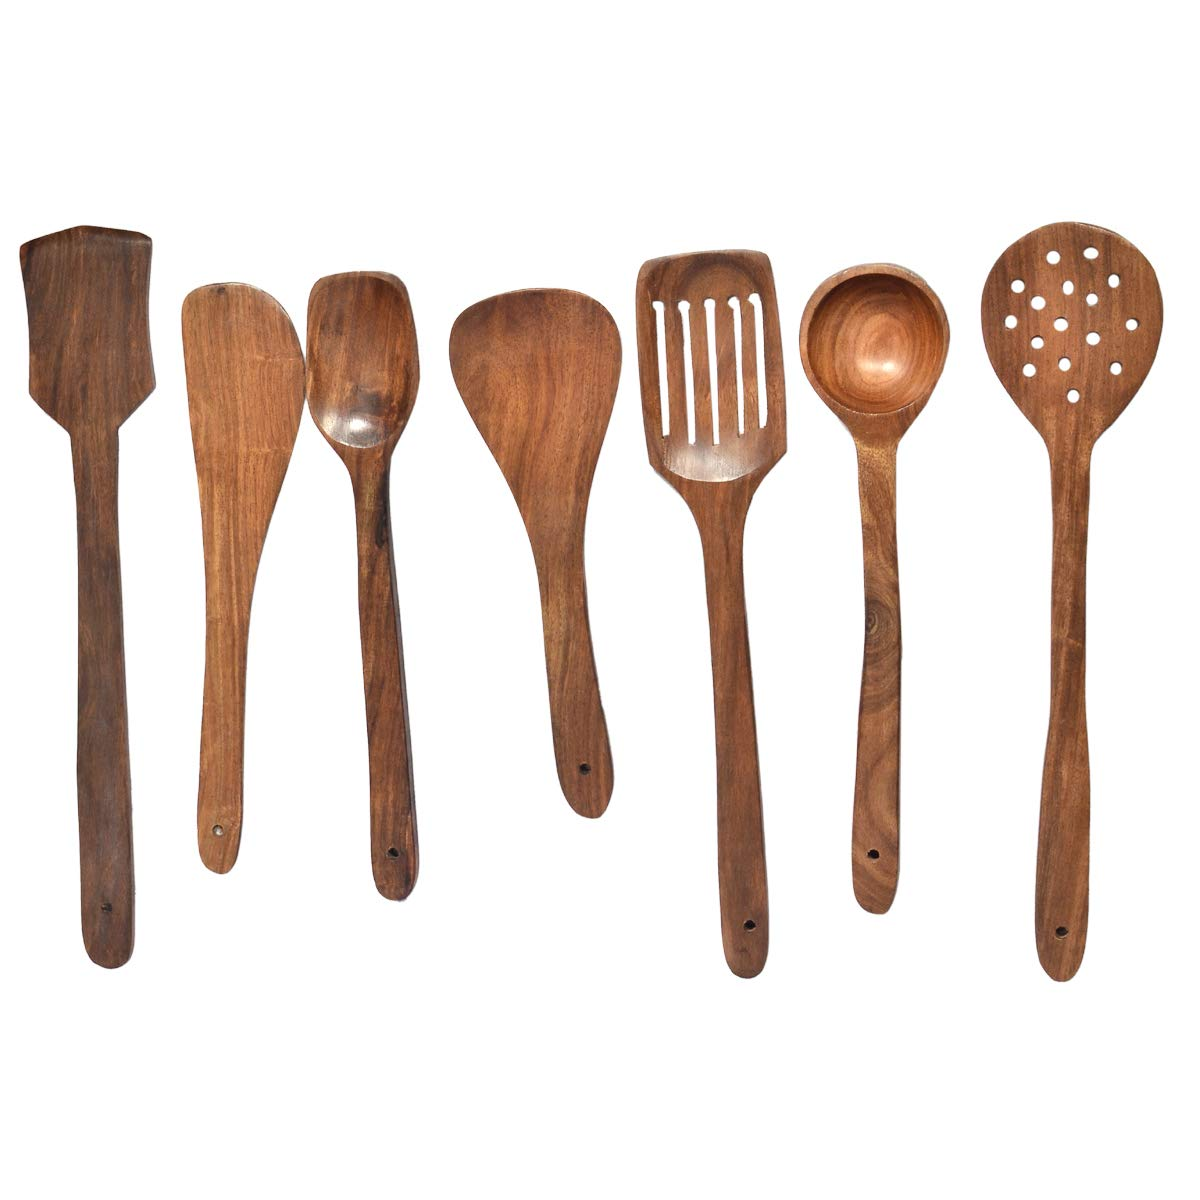 Ekapes Serving and Cooking Spoon Set & Ladles Wooden Spoon Brown Kitchen Tool Set with a Holding Jar